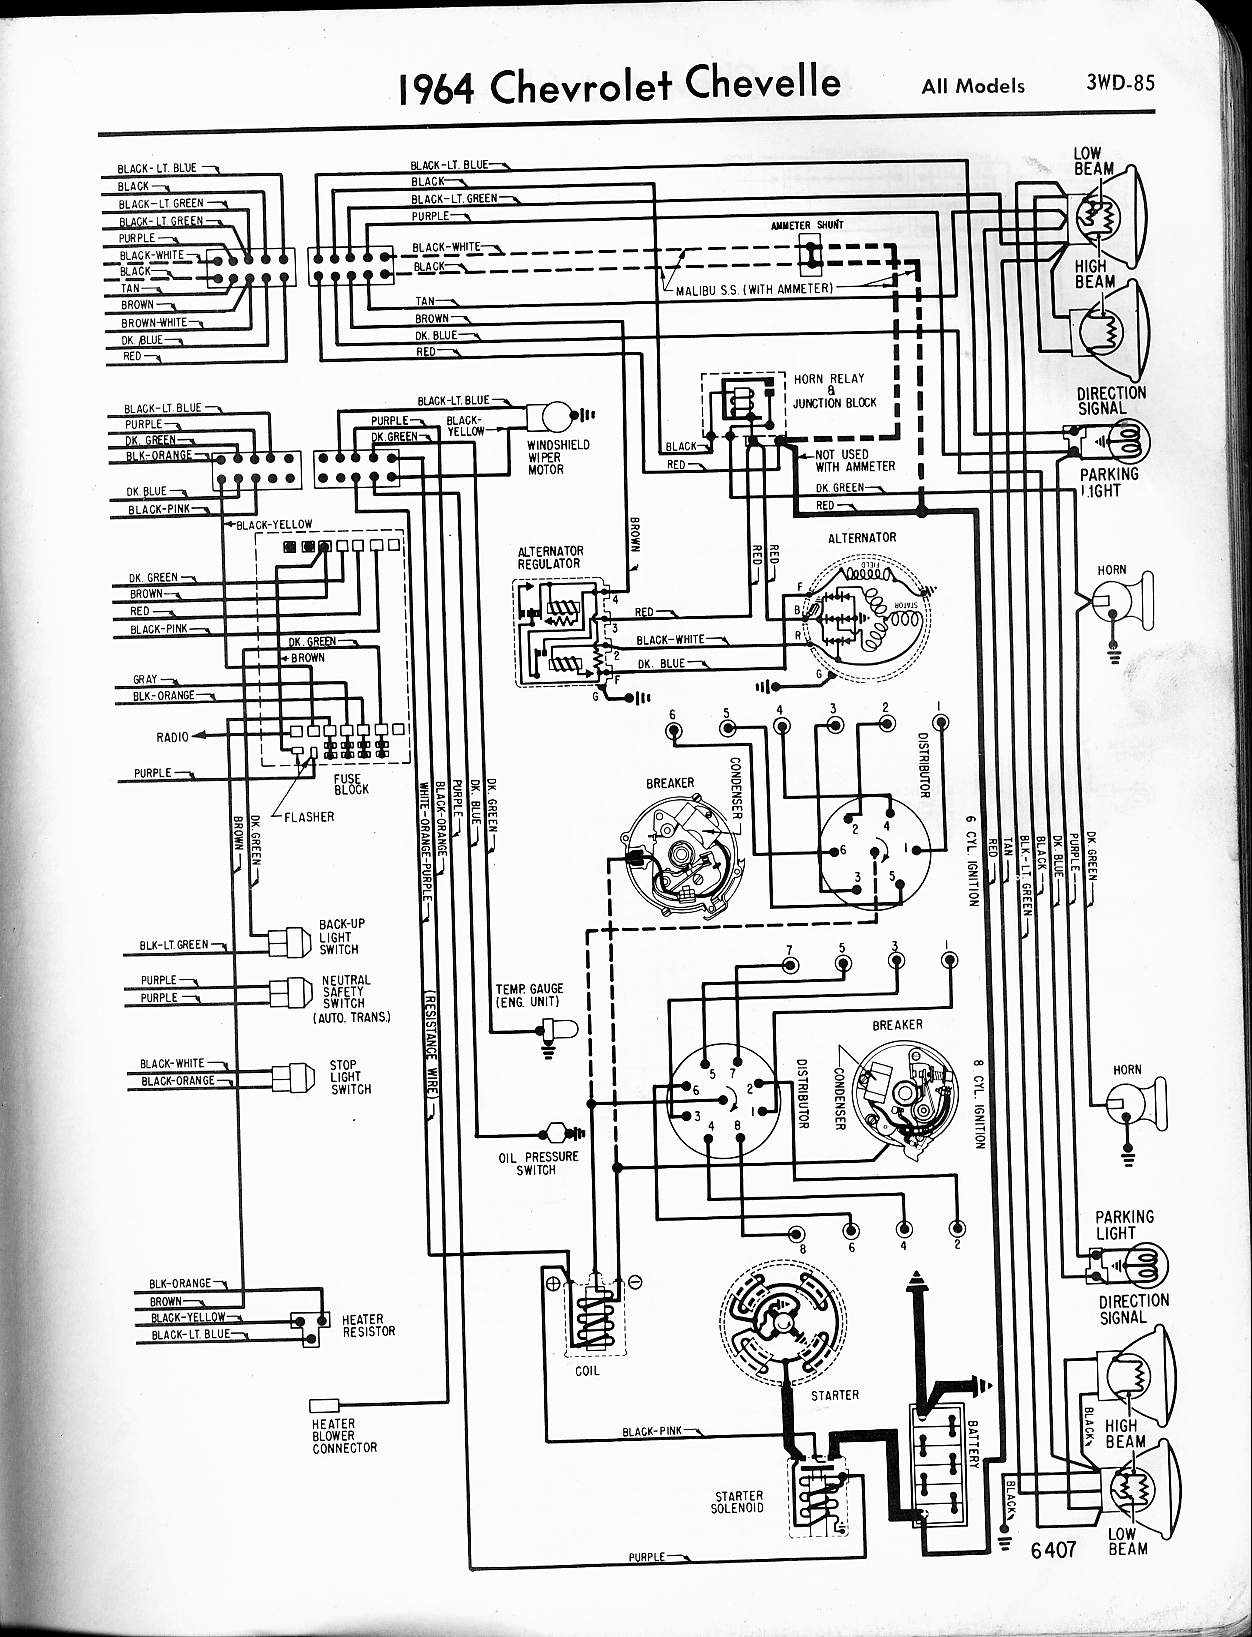 1969 Chevelle Tach Wiring Diagram Opinions About 1970 Pontiac Gto Chevy Diagrams Rh Wizard Com